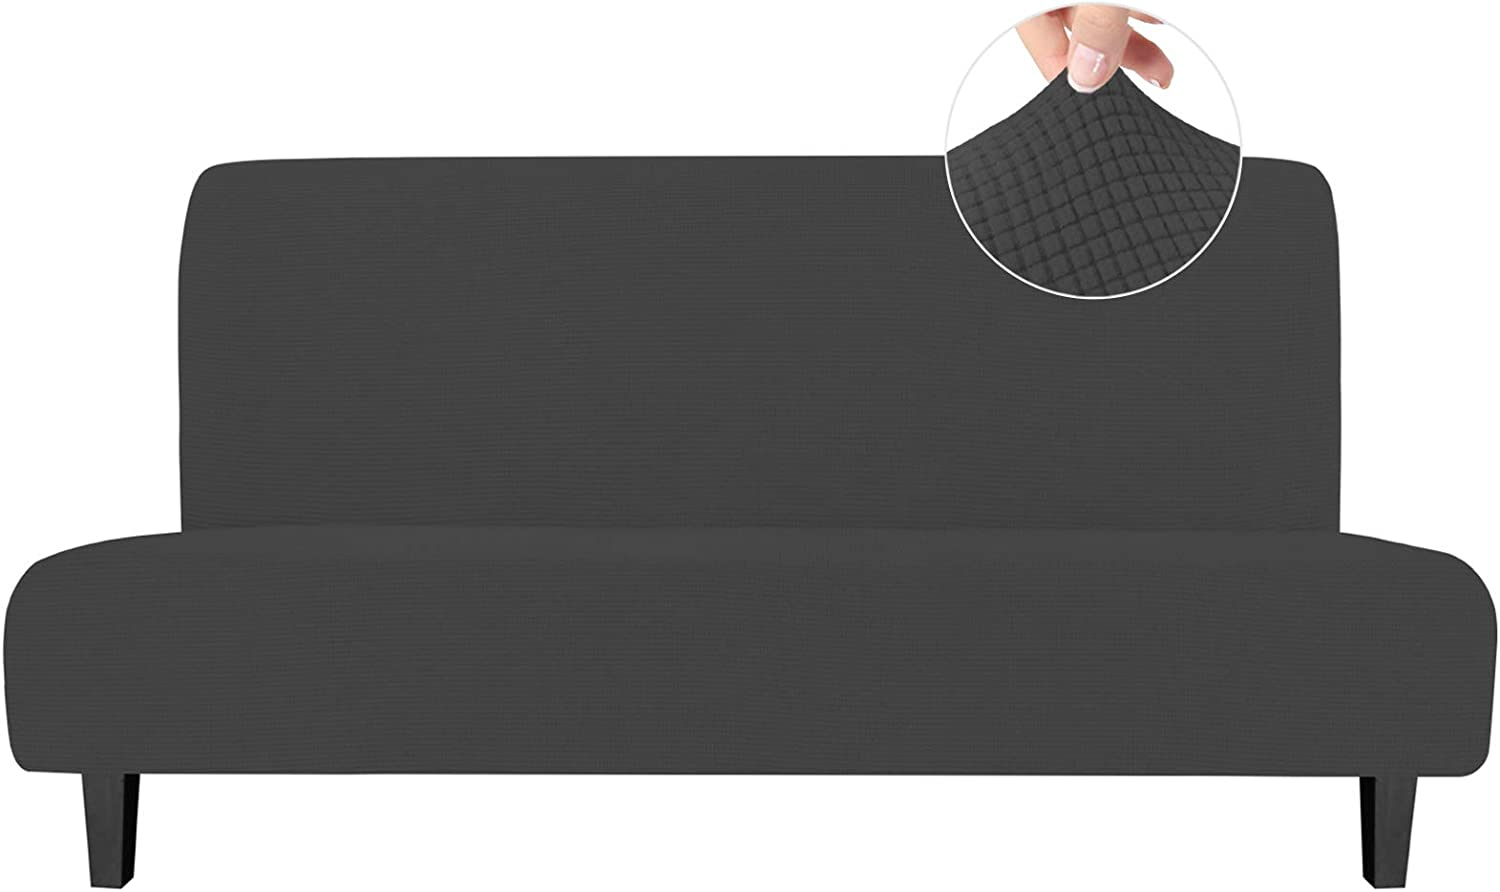 Easy-Going Stretch Sofa Slipcover Armless Sofa Cover Furniture Protector Without Armrests Slipcover Soft with Elastic Bottom for Kids, Spandex Jacquard Fabric Small Checks(futon,Dark Gray): Home & Kitchen